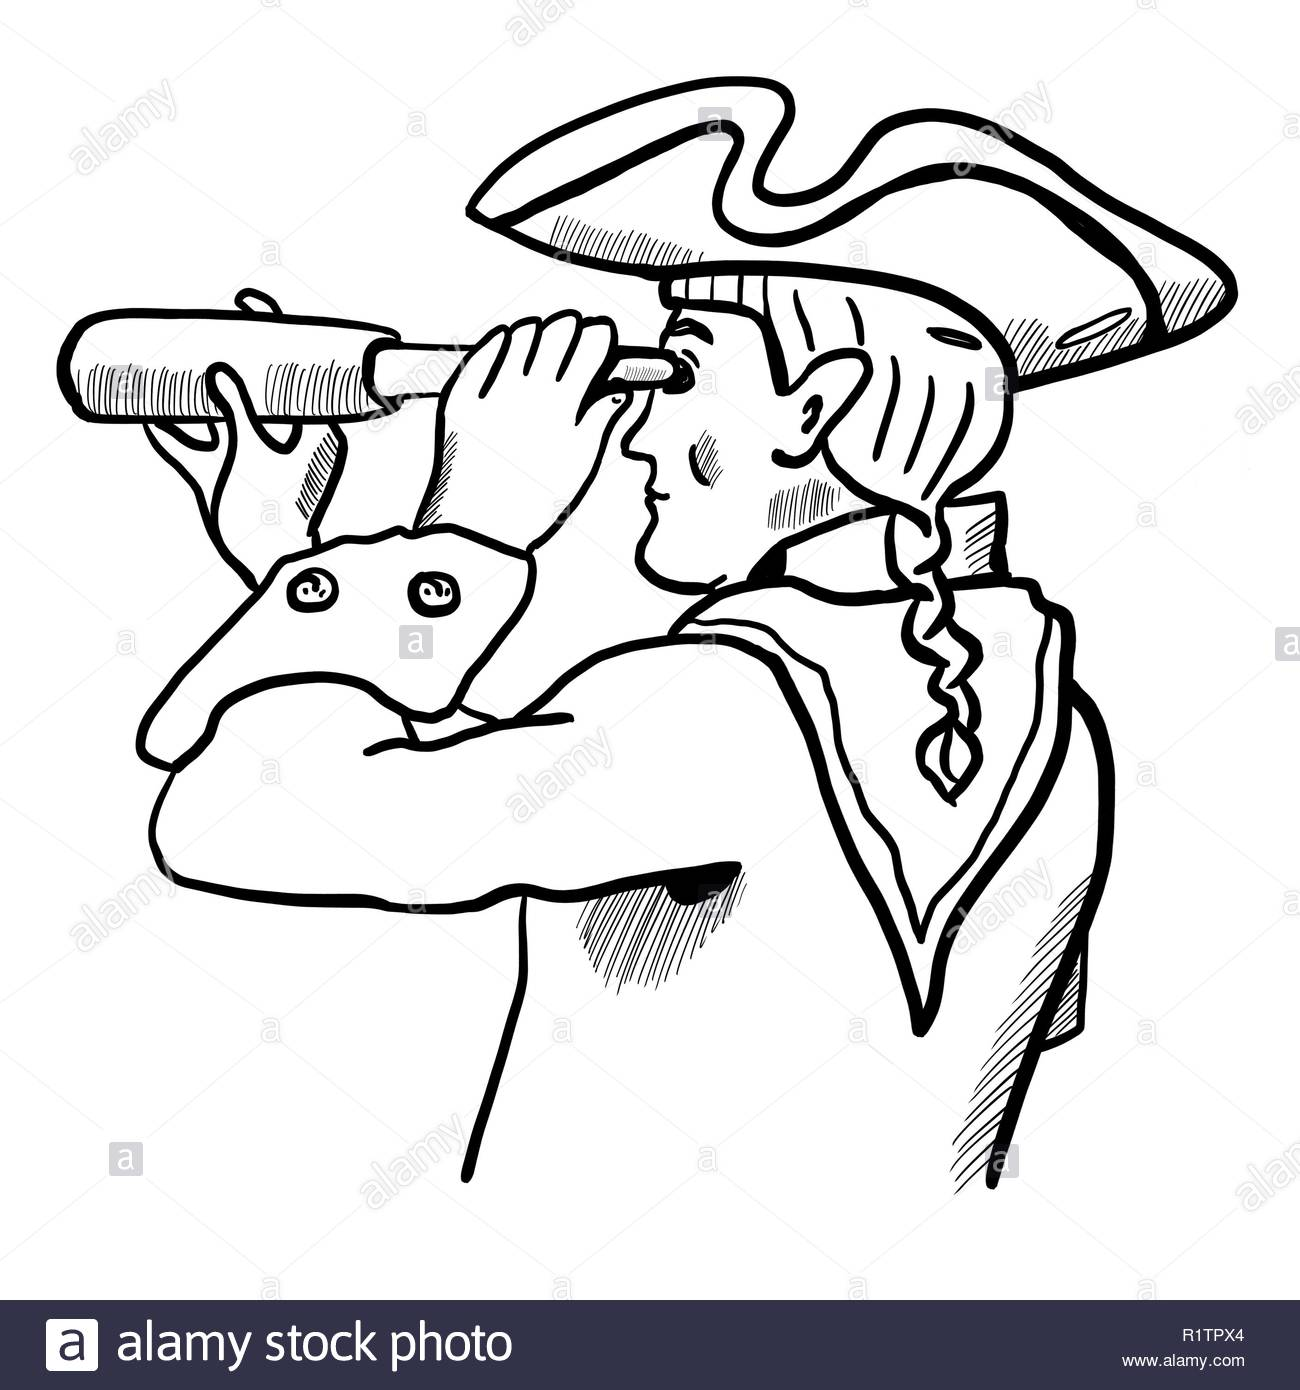 Brave captain in tricorn hat, scarf, uniform with telescope. Marine officer portrait for design, scrapbooking, prints, posters, surface, covers. Man l - Stock Image